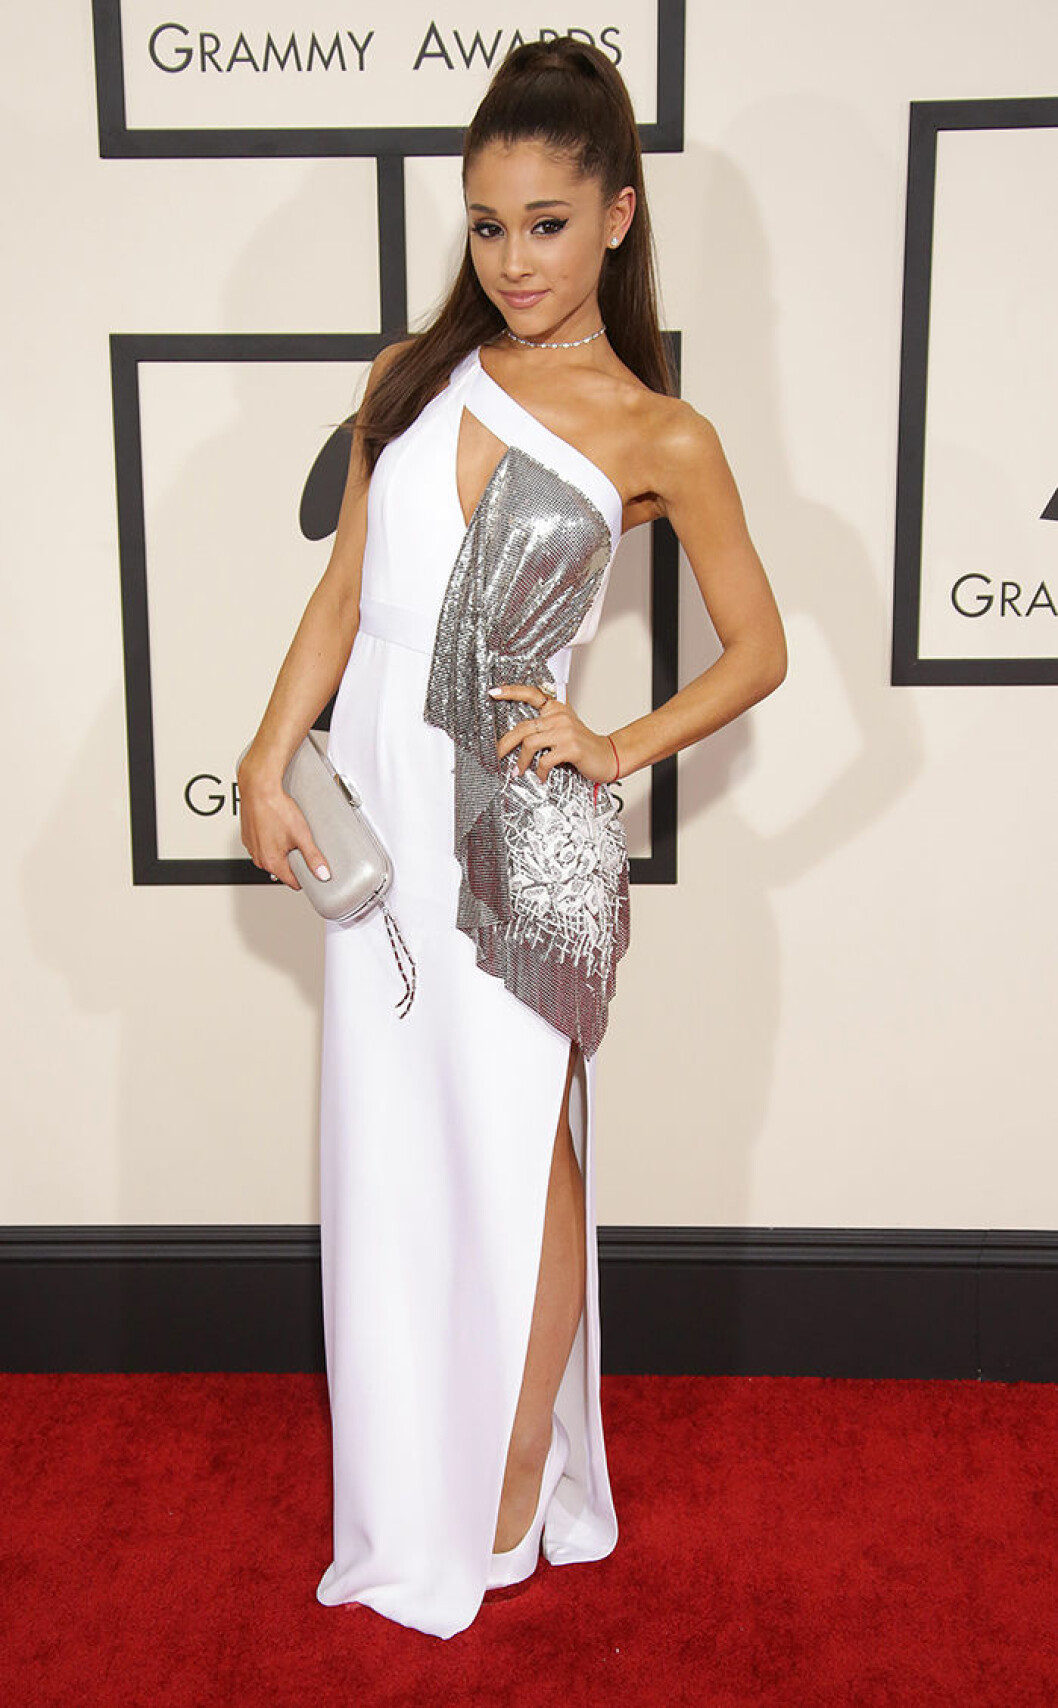 57th Annual Grammy Awards, Arrivals, Los Angeles, America - 08 Feb 2015